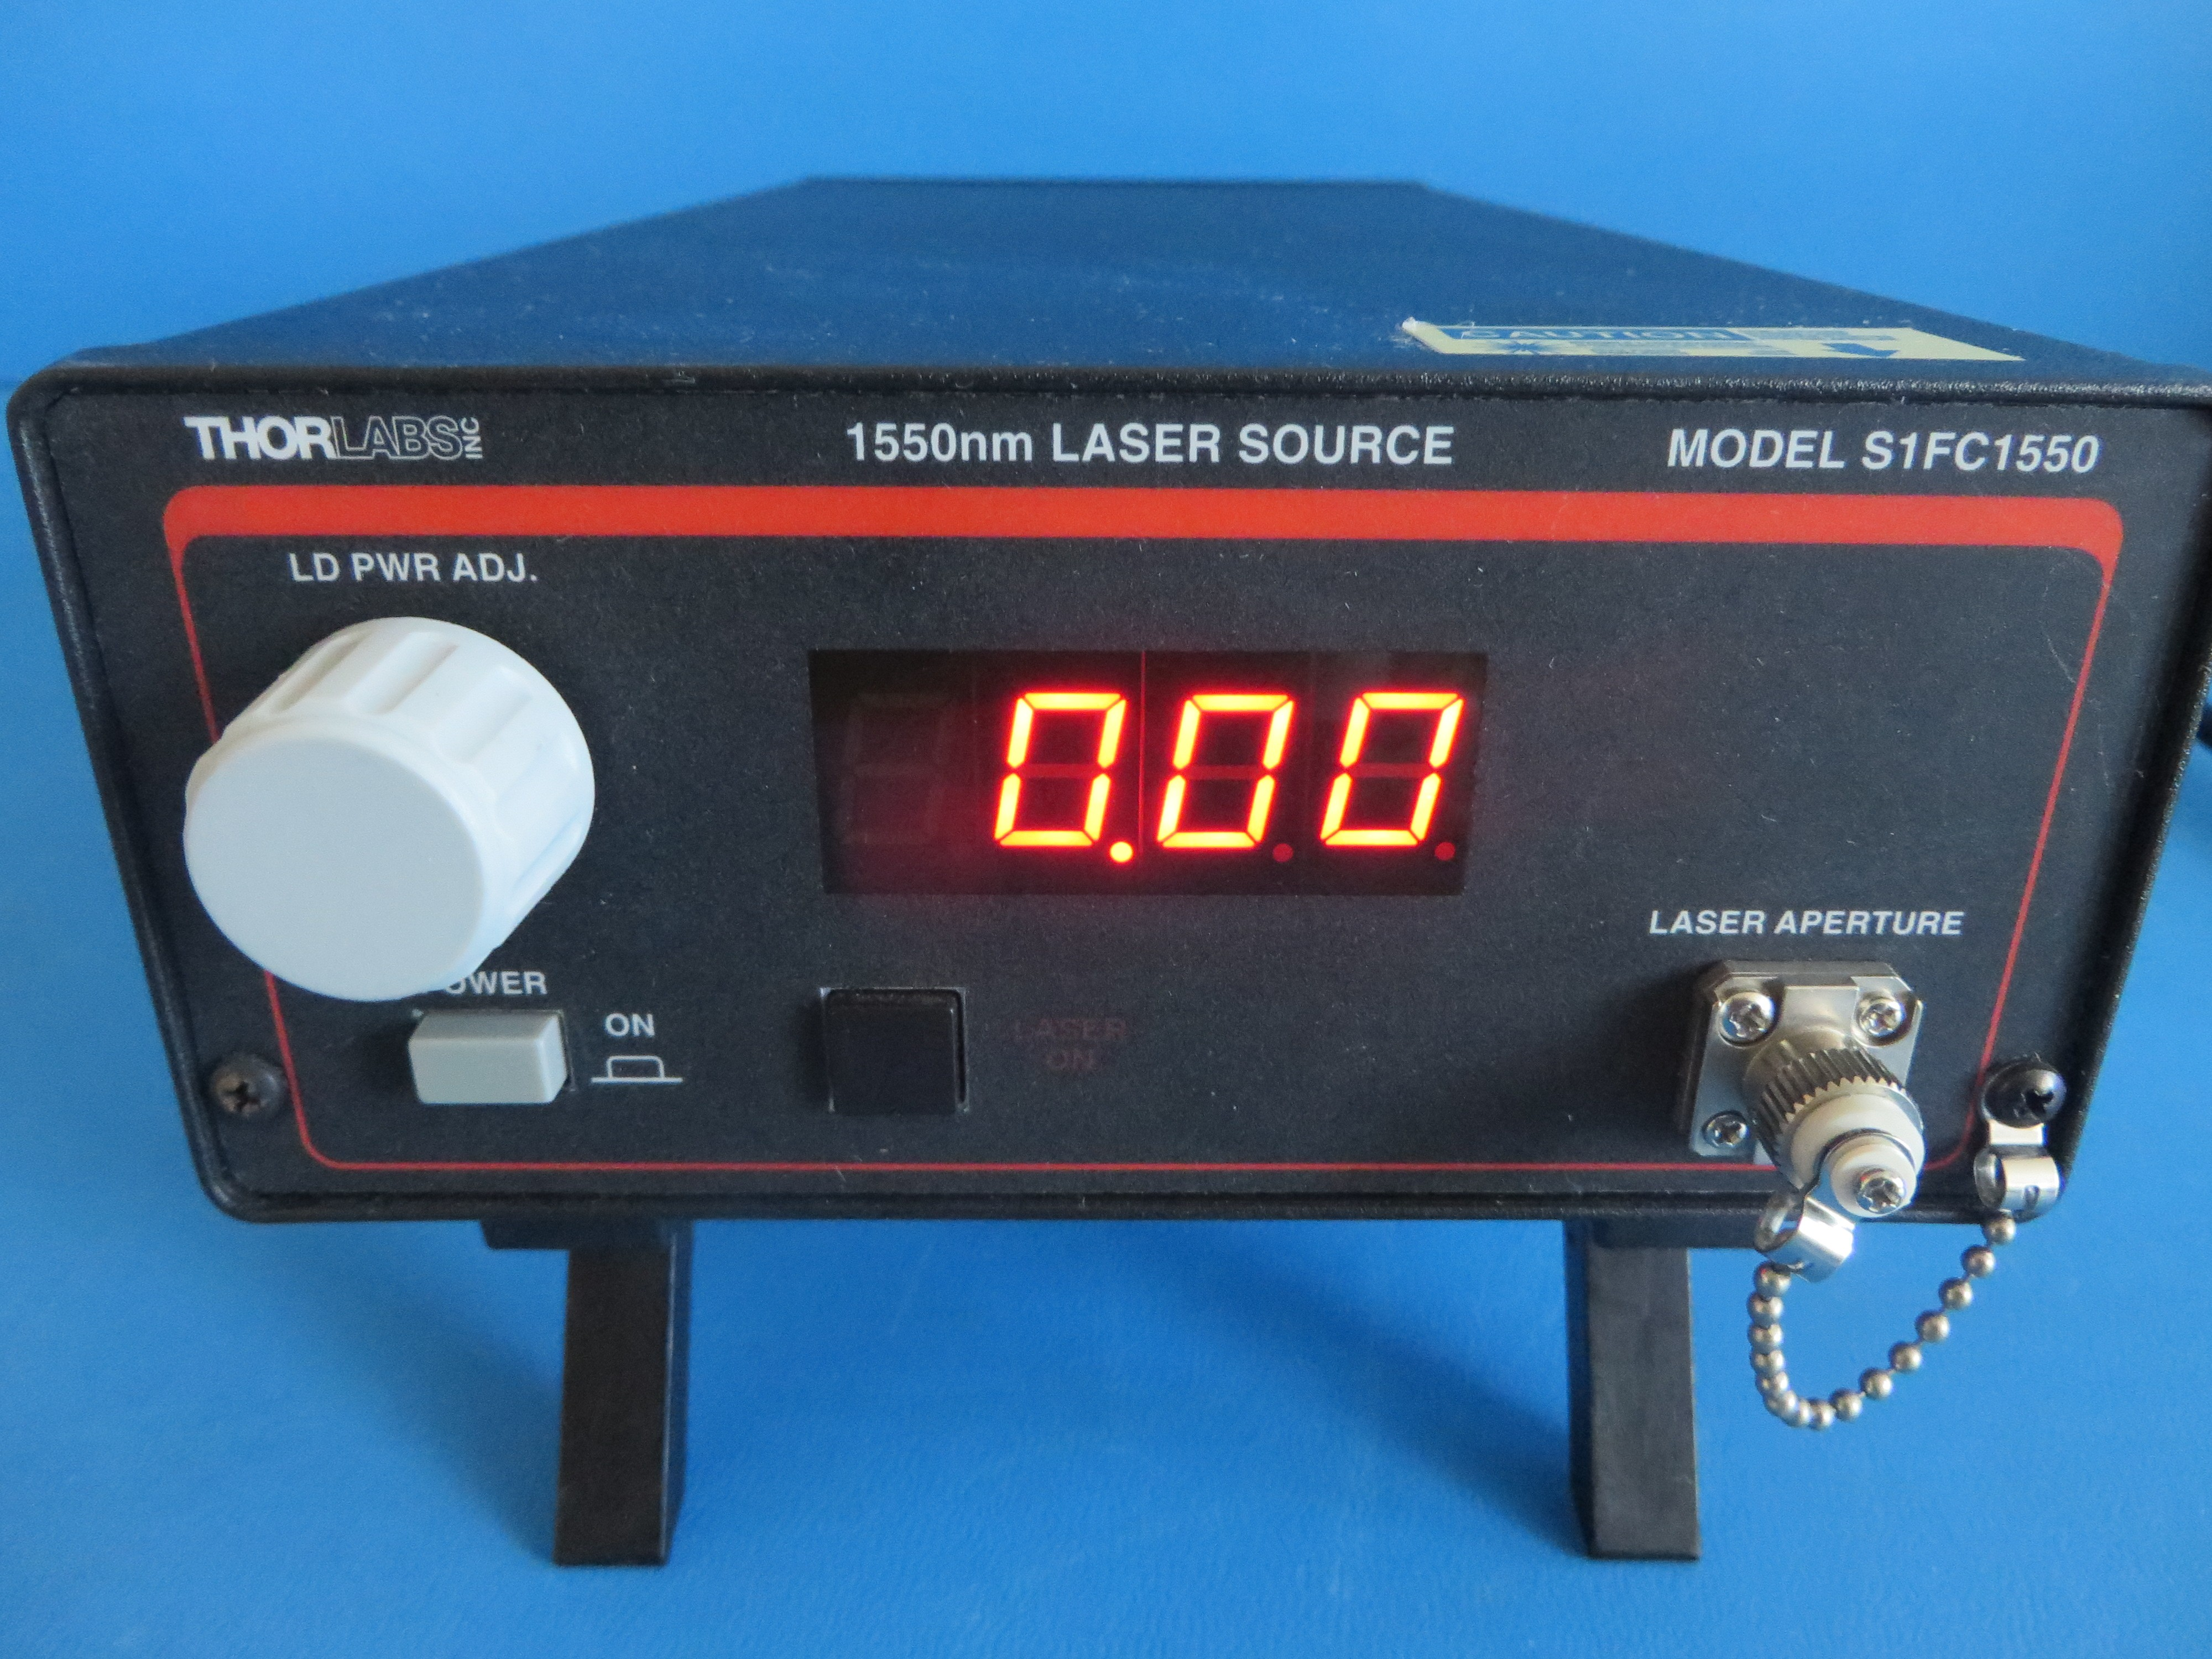 Thorlabs S1FC1550 Laser Source 1550 nm Silicon Valley Techparts